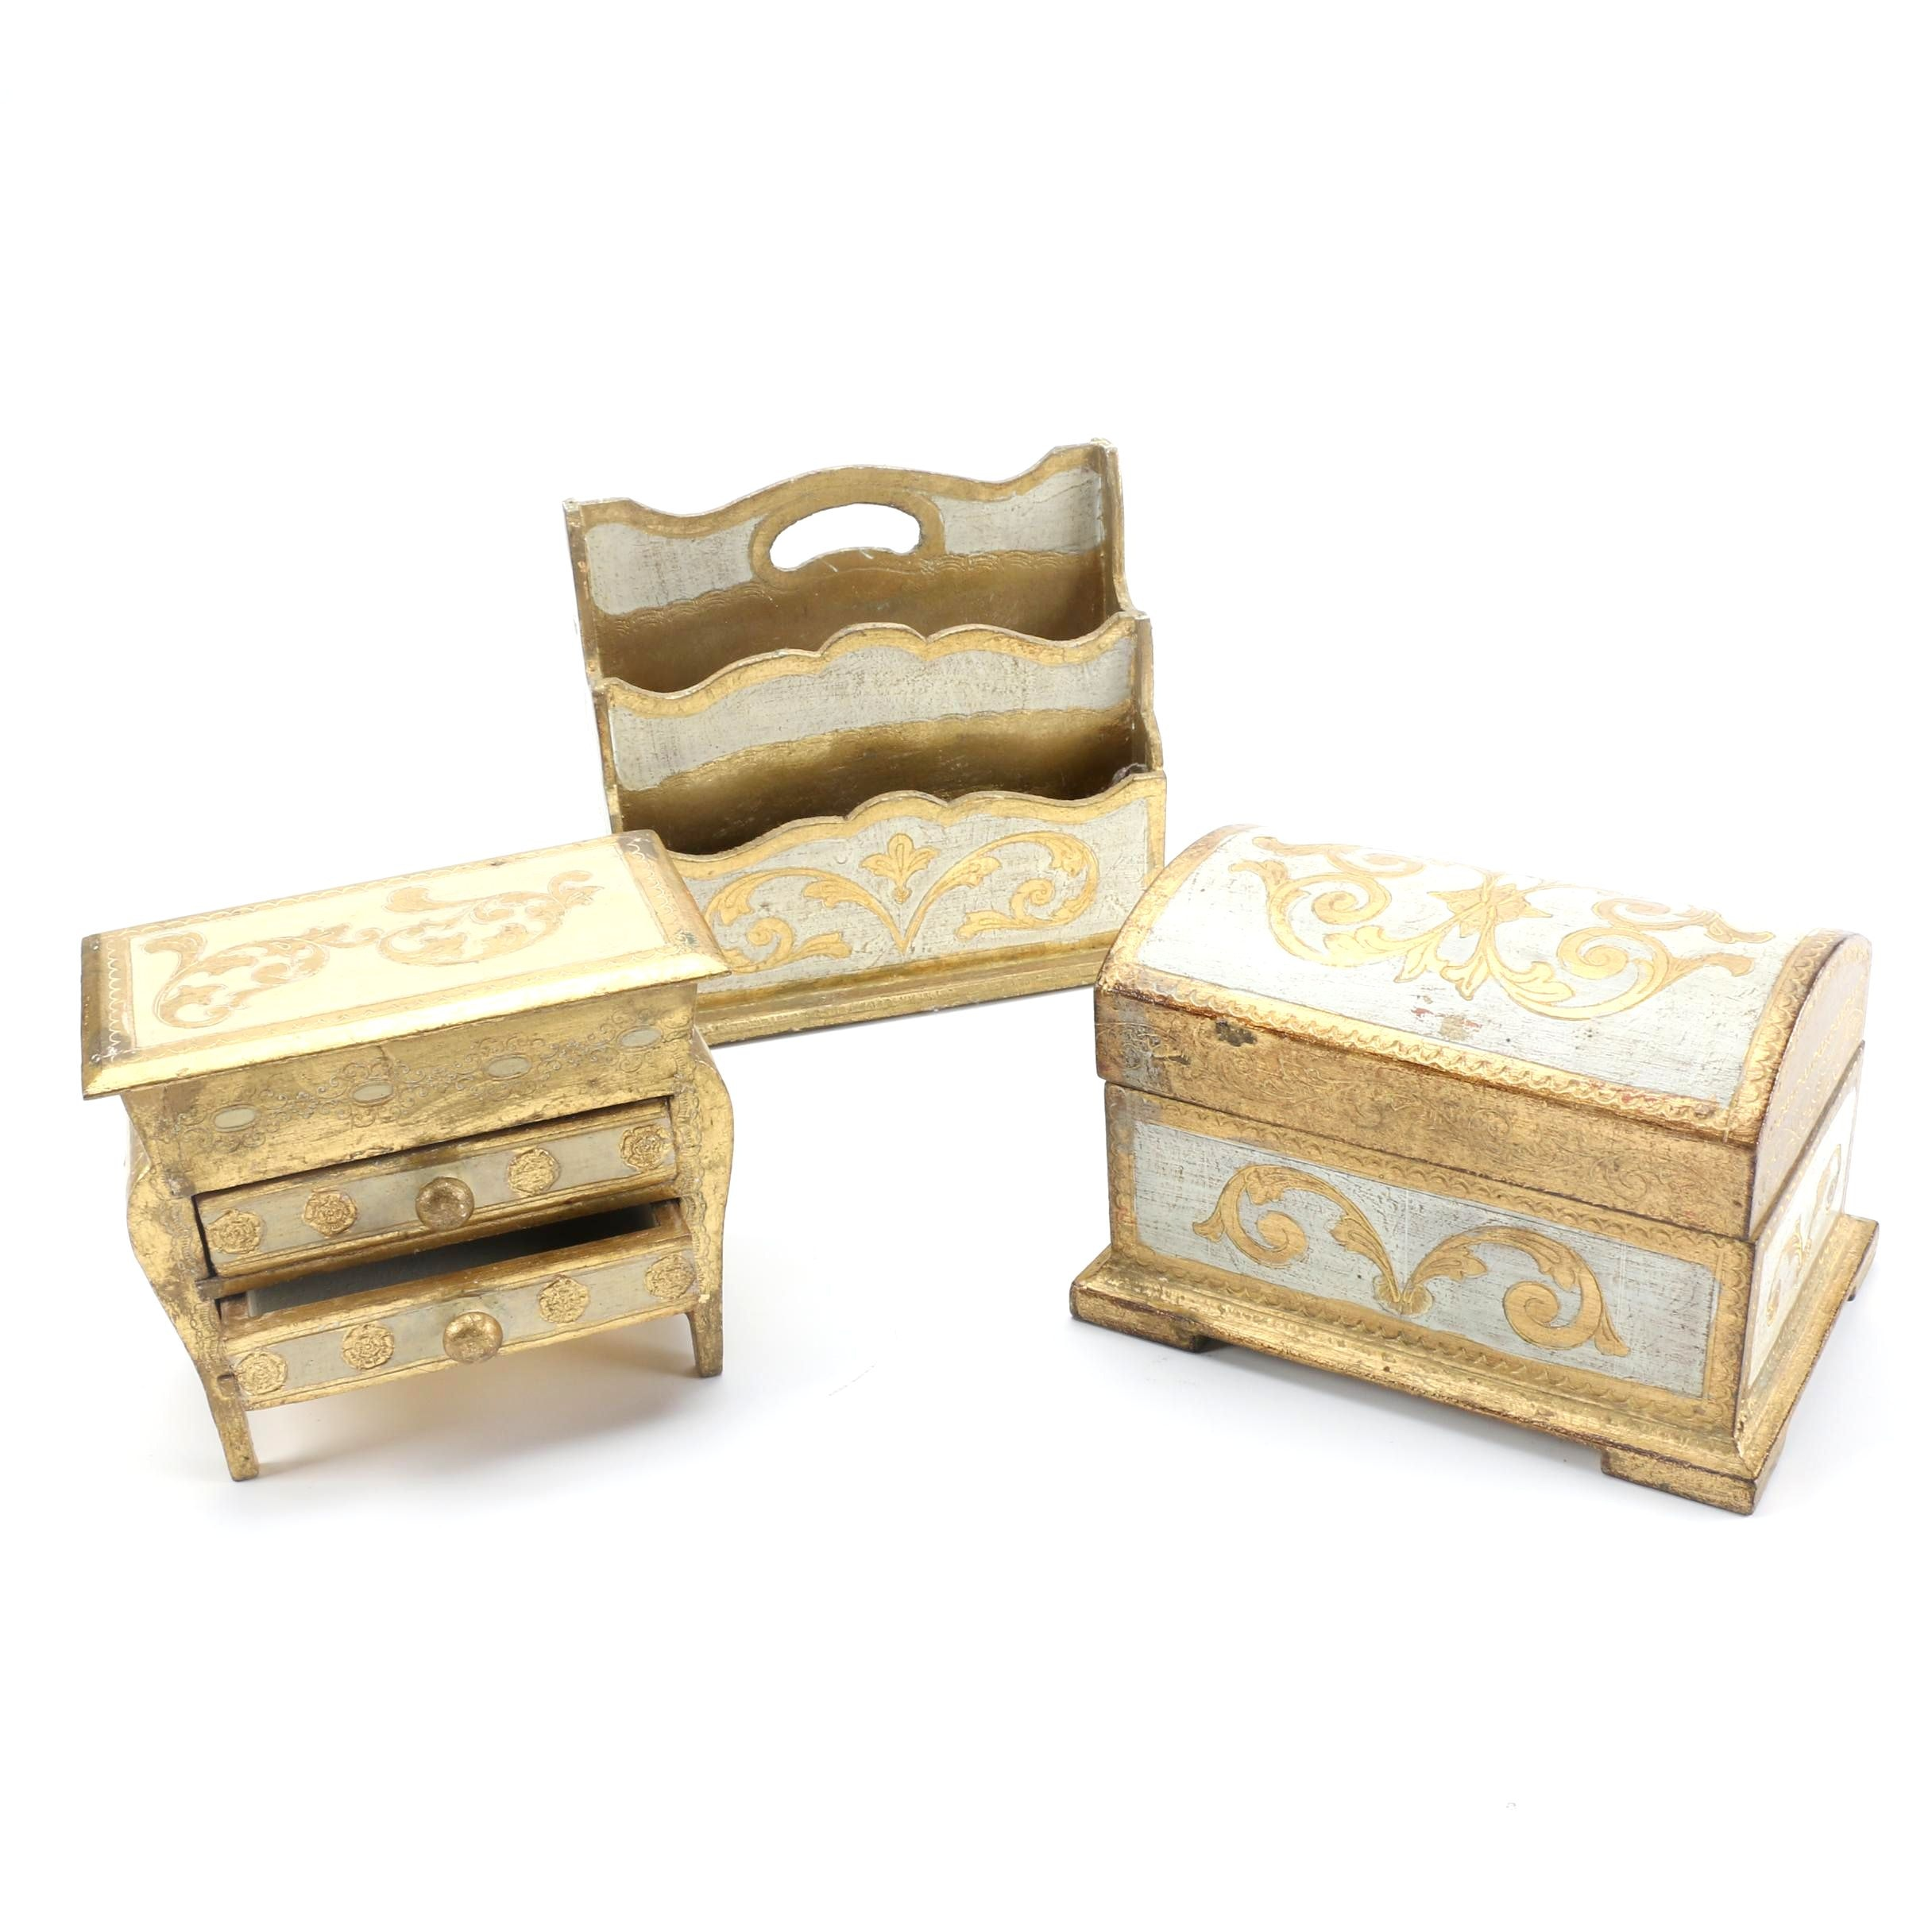 Italian Florentine Style Miniature Chests and Letter Holder